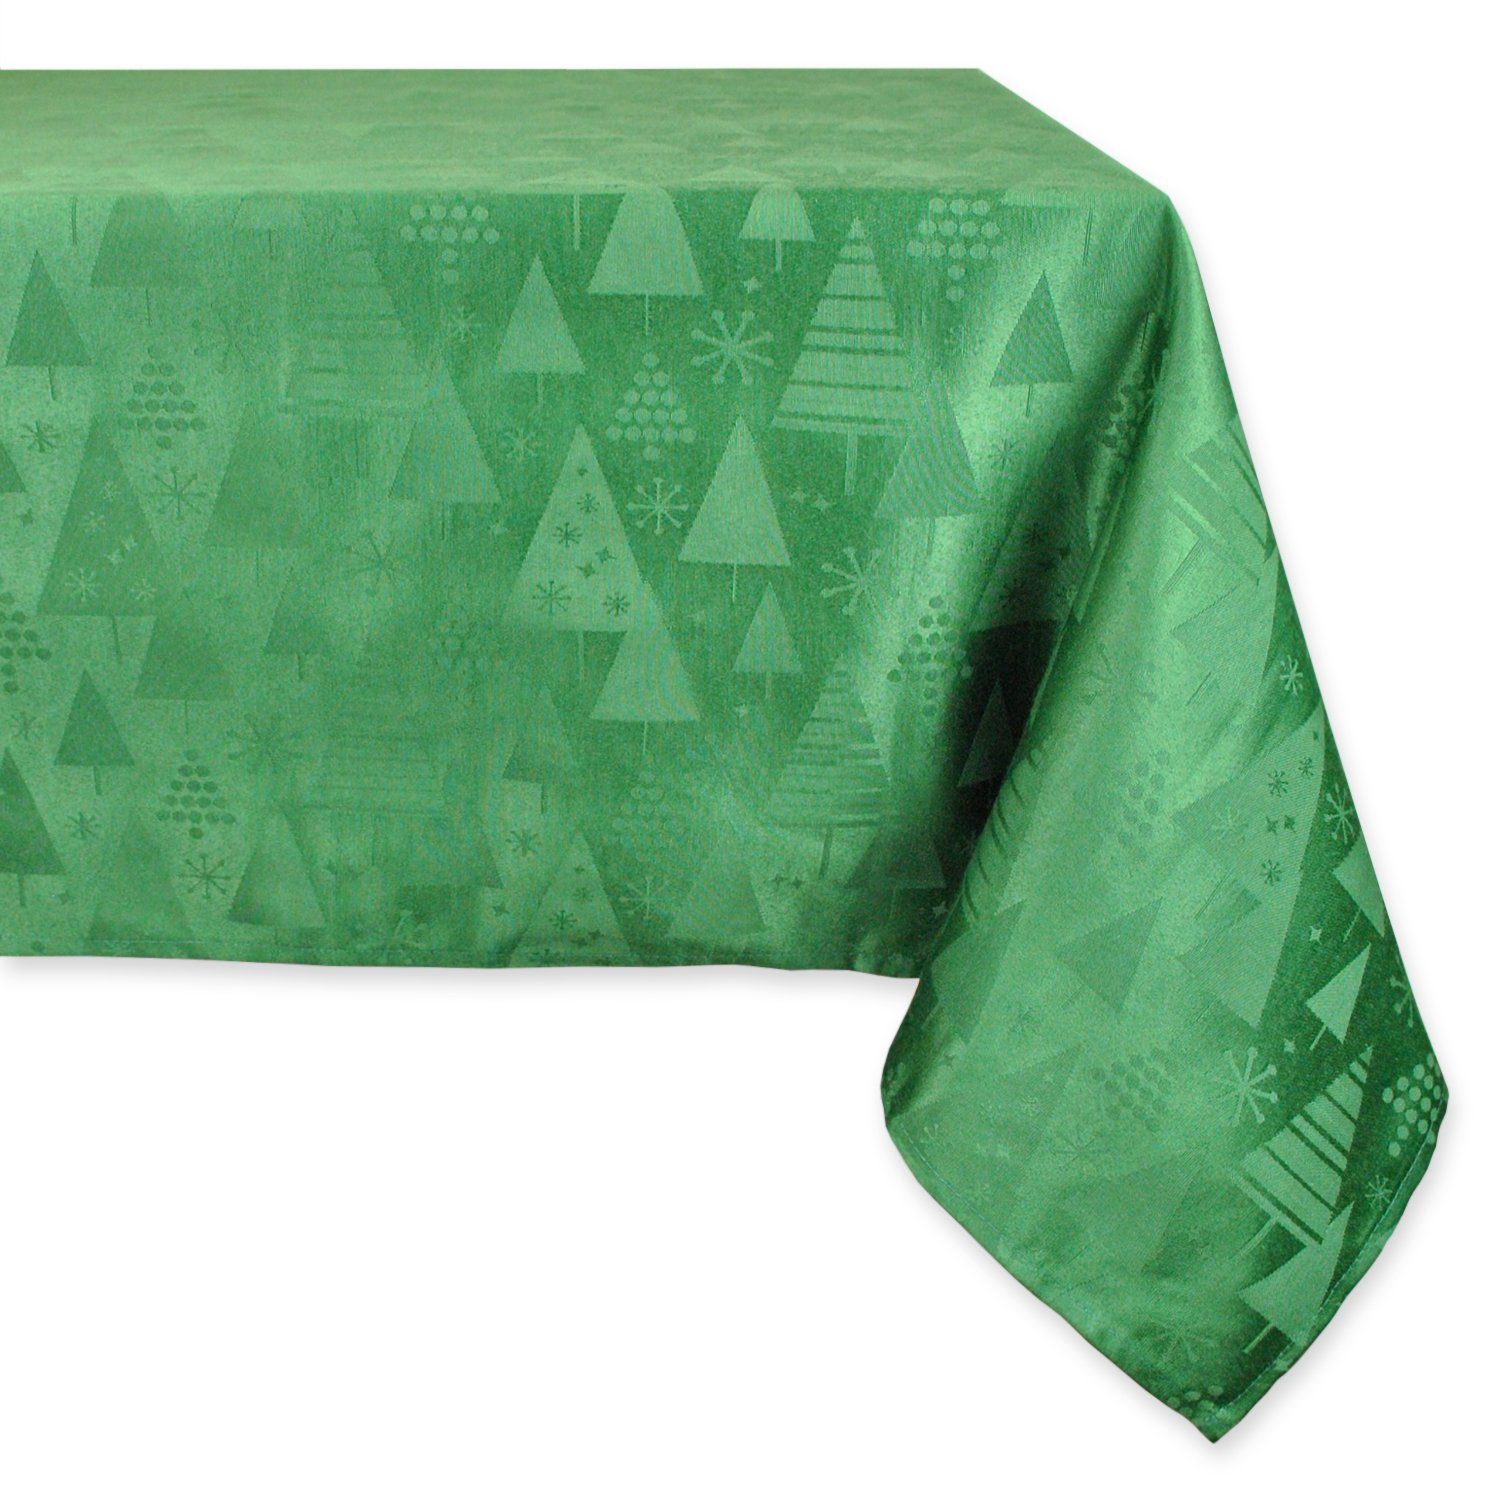 DII Machine Washable, Dinner and Holiday Tablecloth 52 x 90, Holiday Trees, Green, Seats 6 to 8 people CAMZ34219